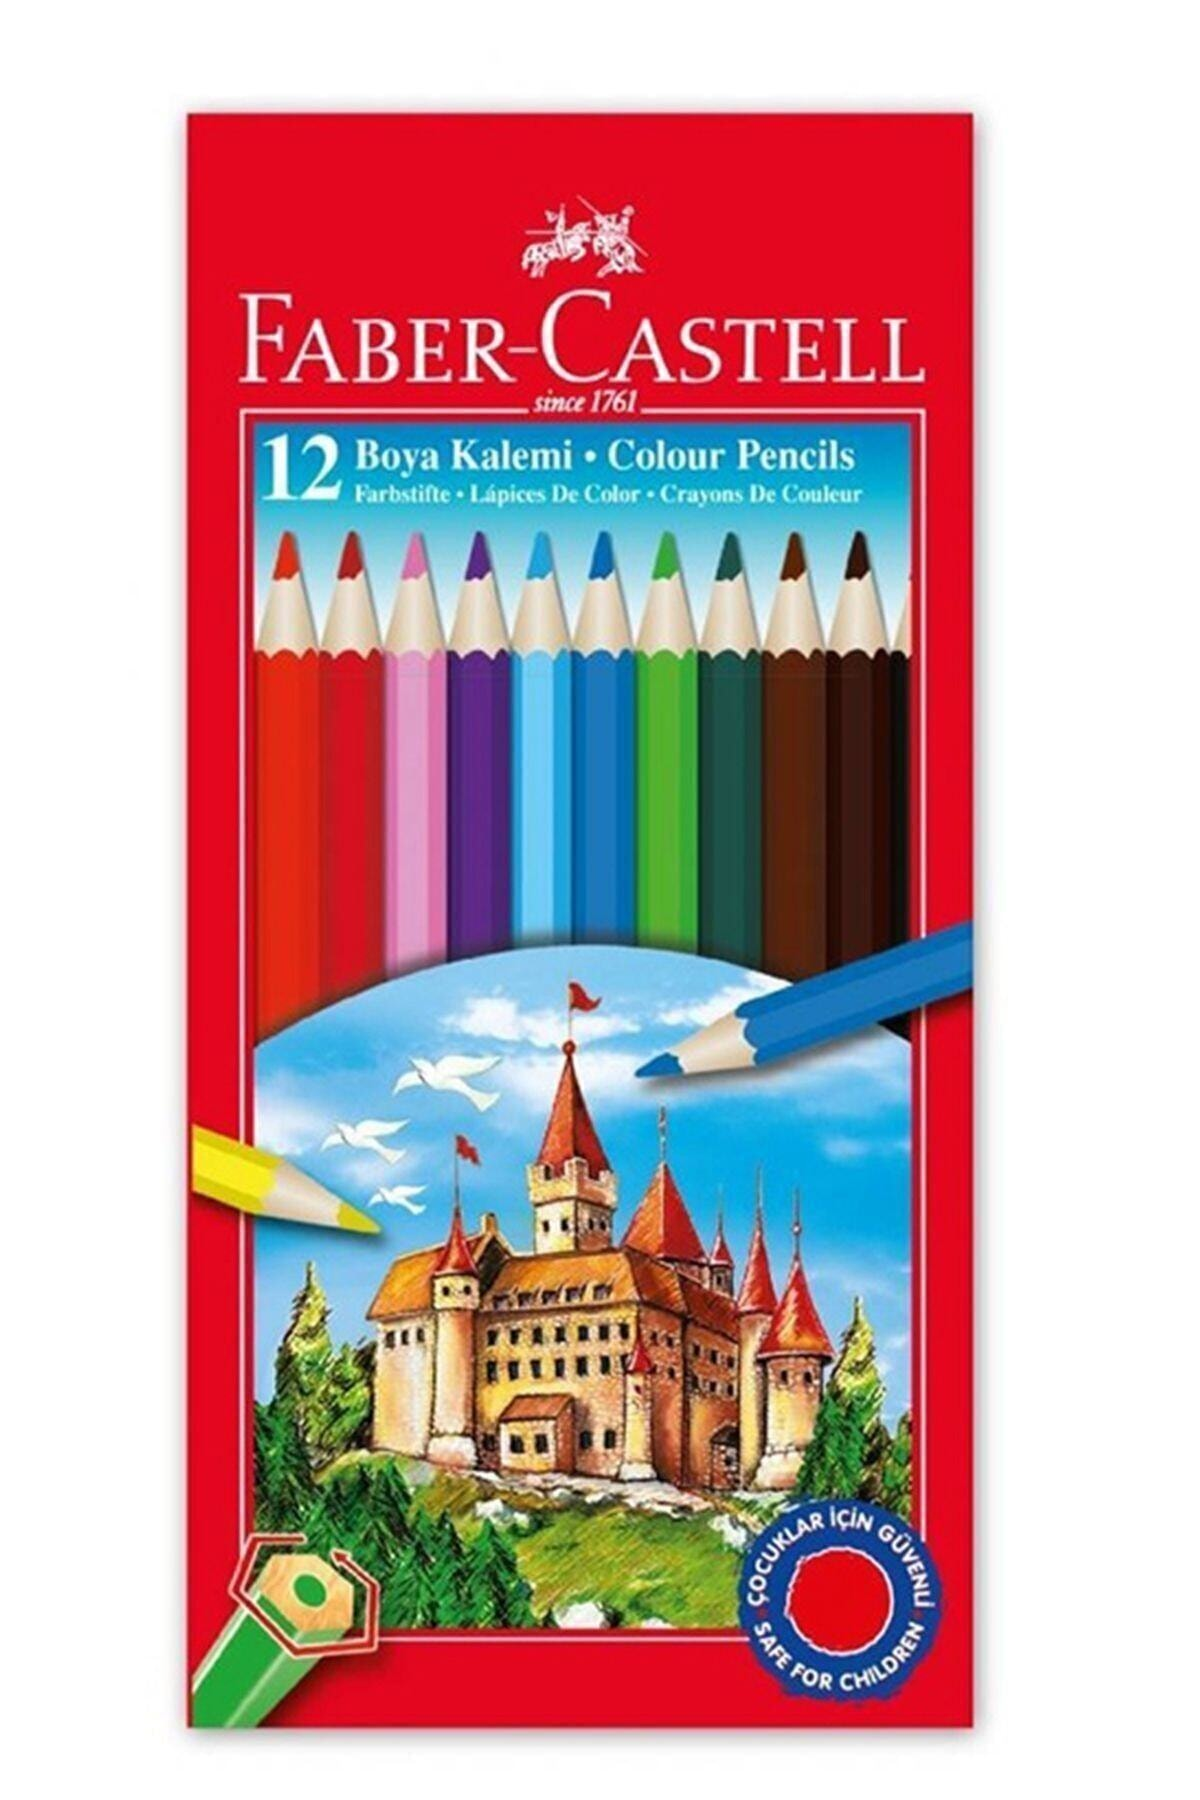 Faber Castell Crayon 12 Color Full Size School Crayons Stationery Paint Pen Color Whiteboard Pen